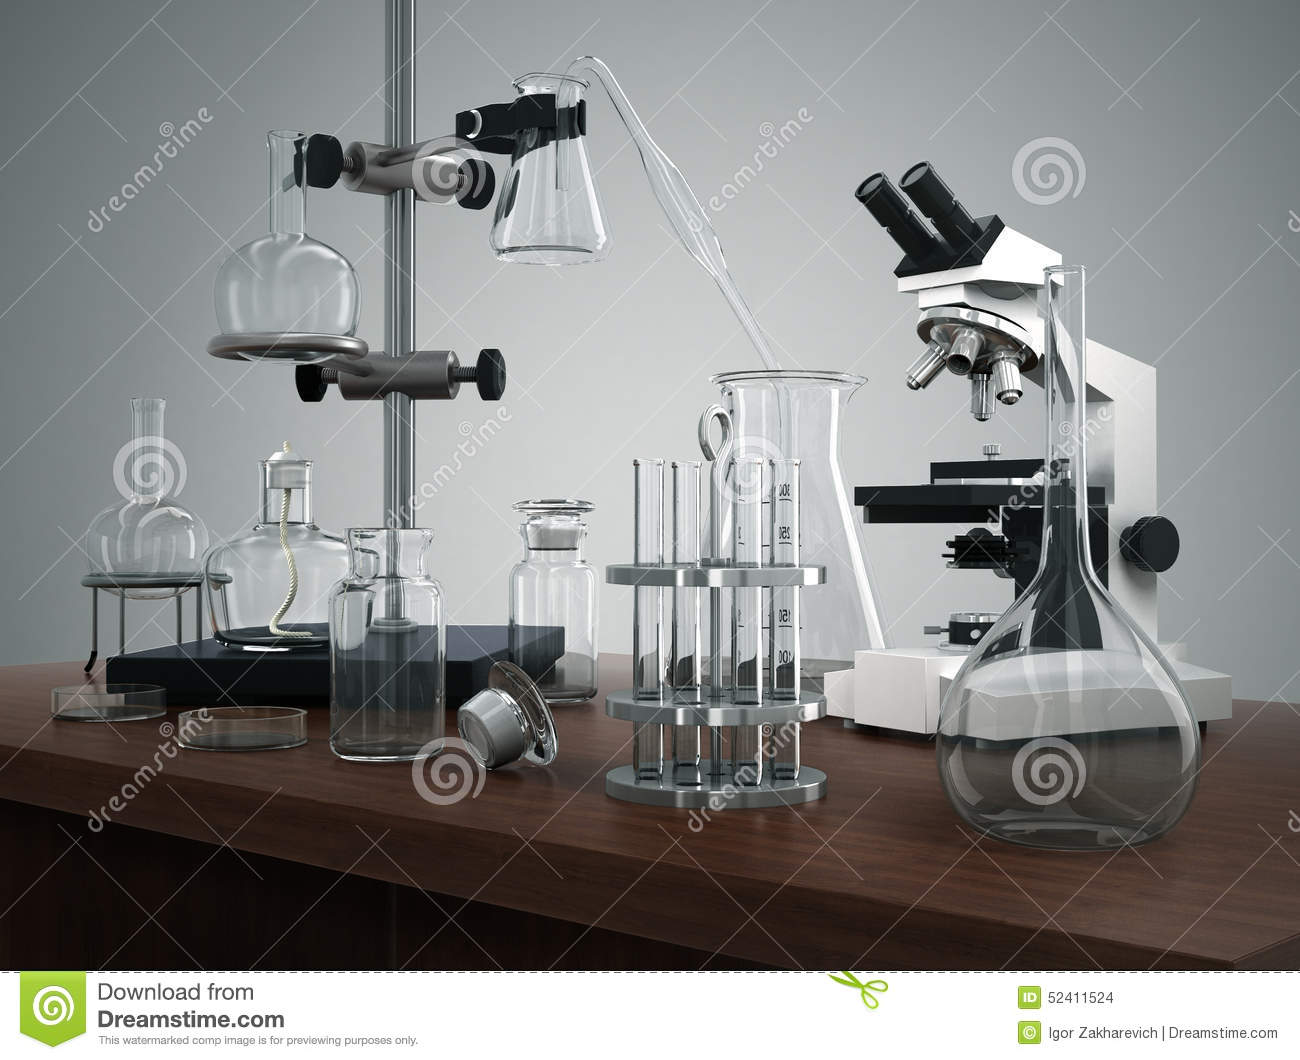 Test Tubes With Laboratory Equipment And Microscope On The Table Stock Illustration